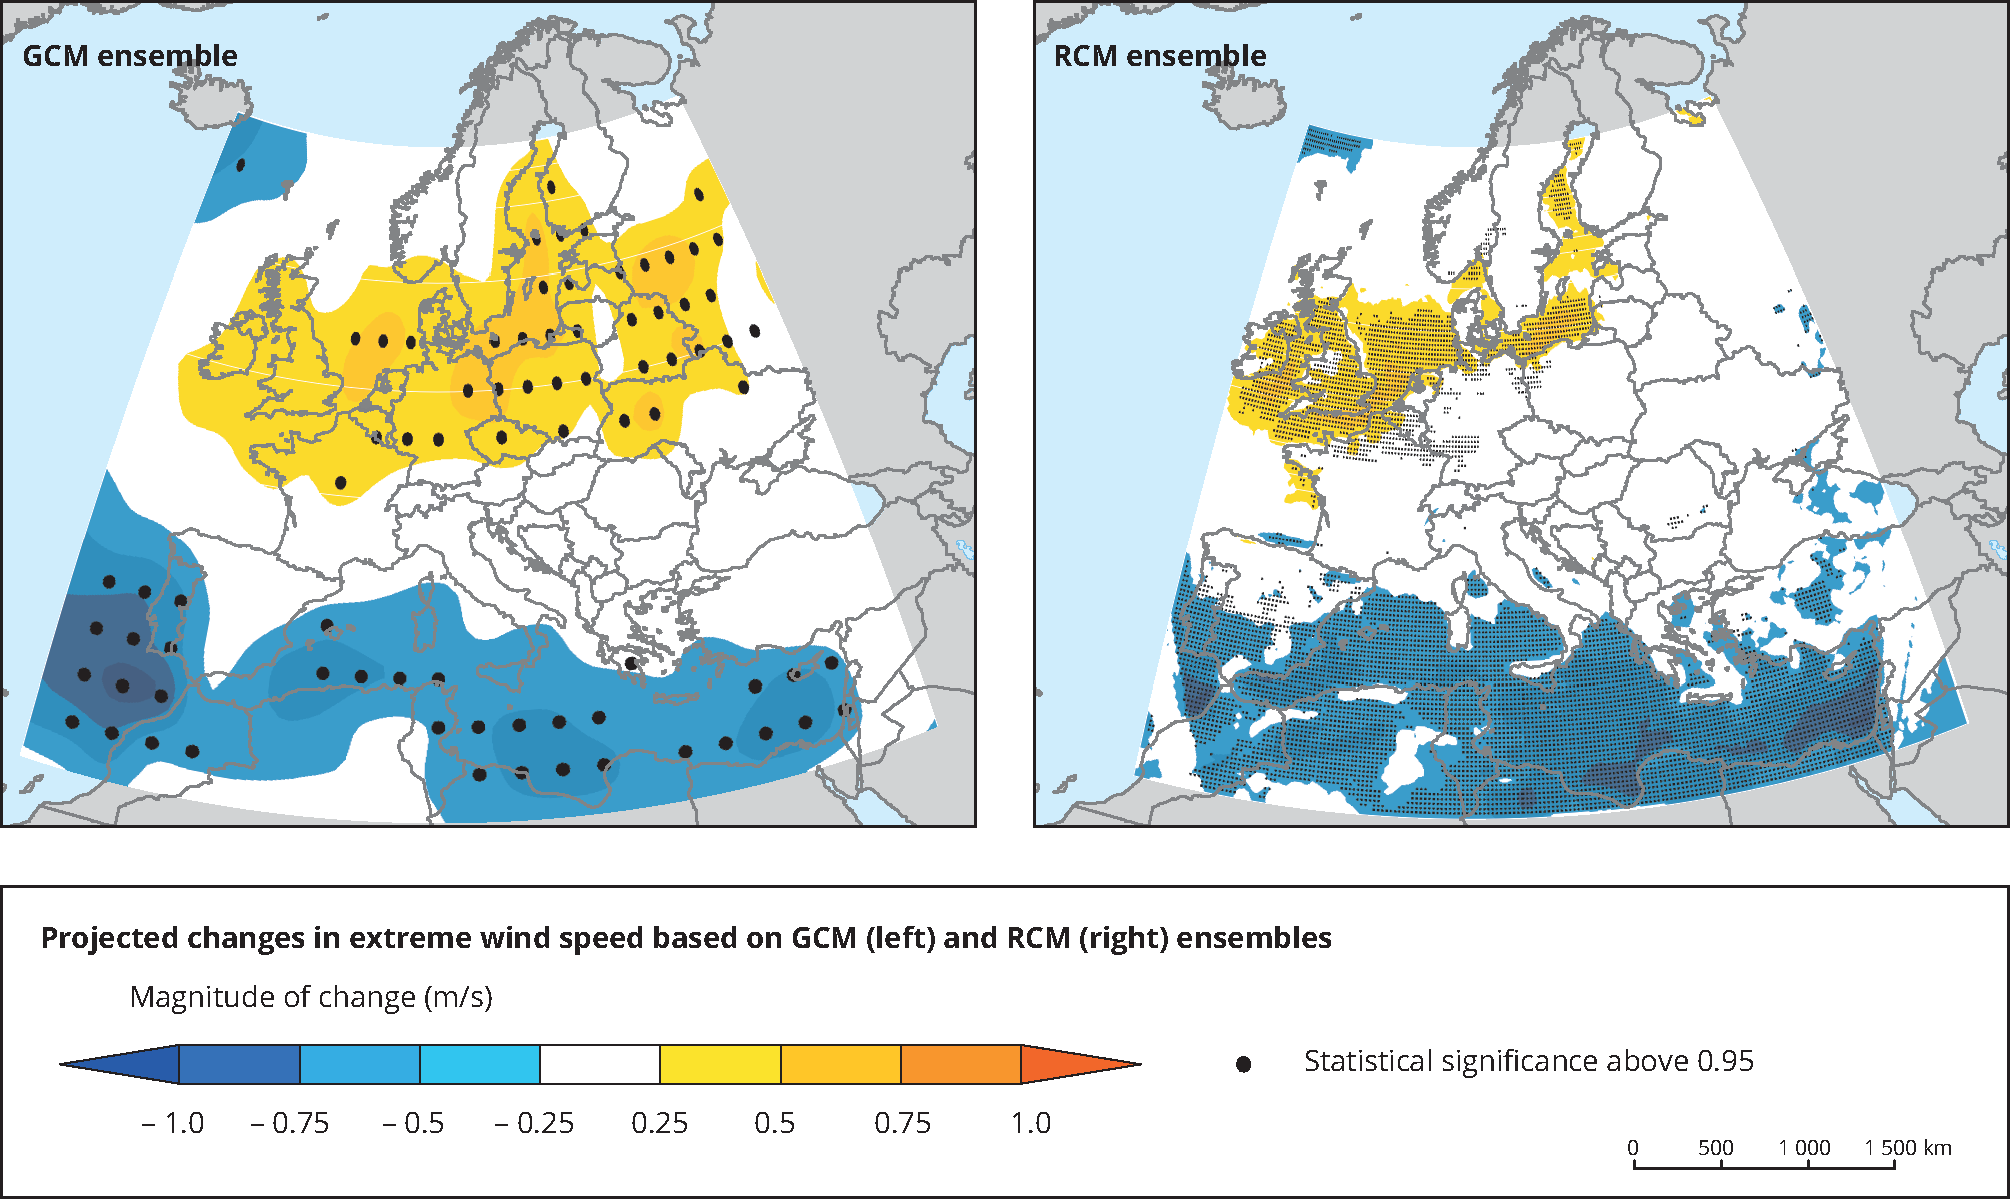 Projected changes in extreme wind speed based on GCM and RCM ensembles